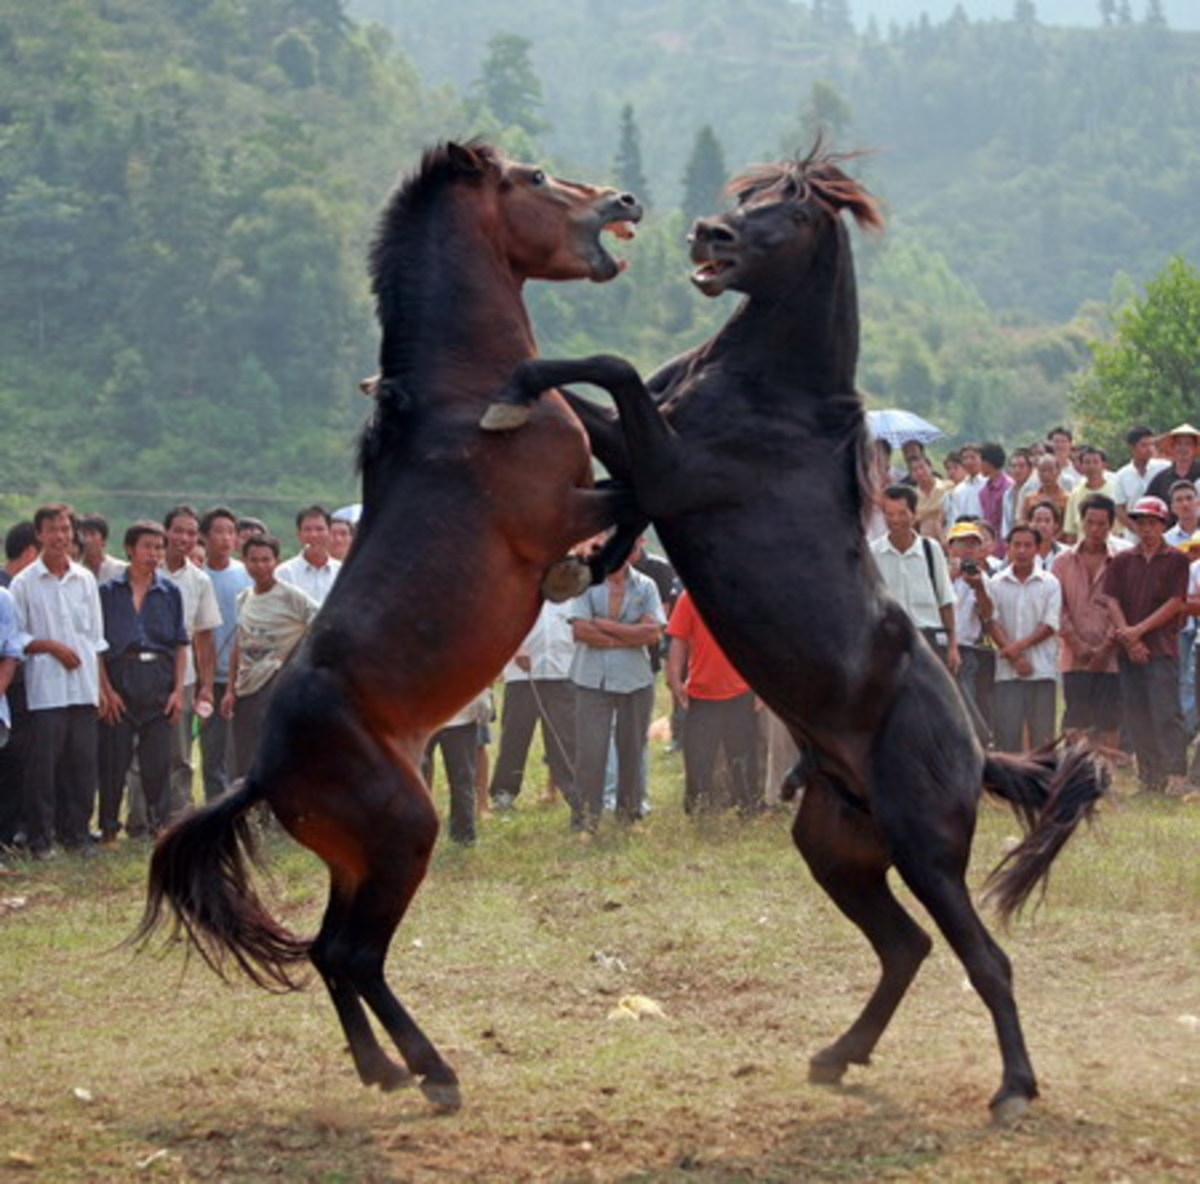 Animal cruelty: Horse fighting in China